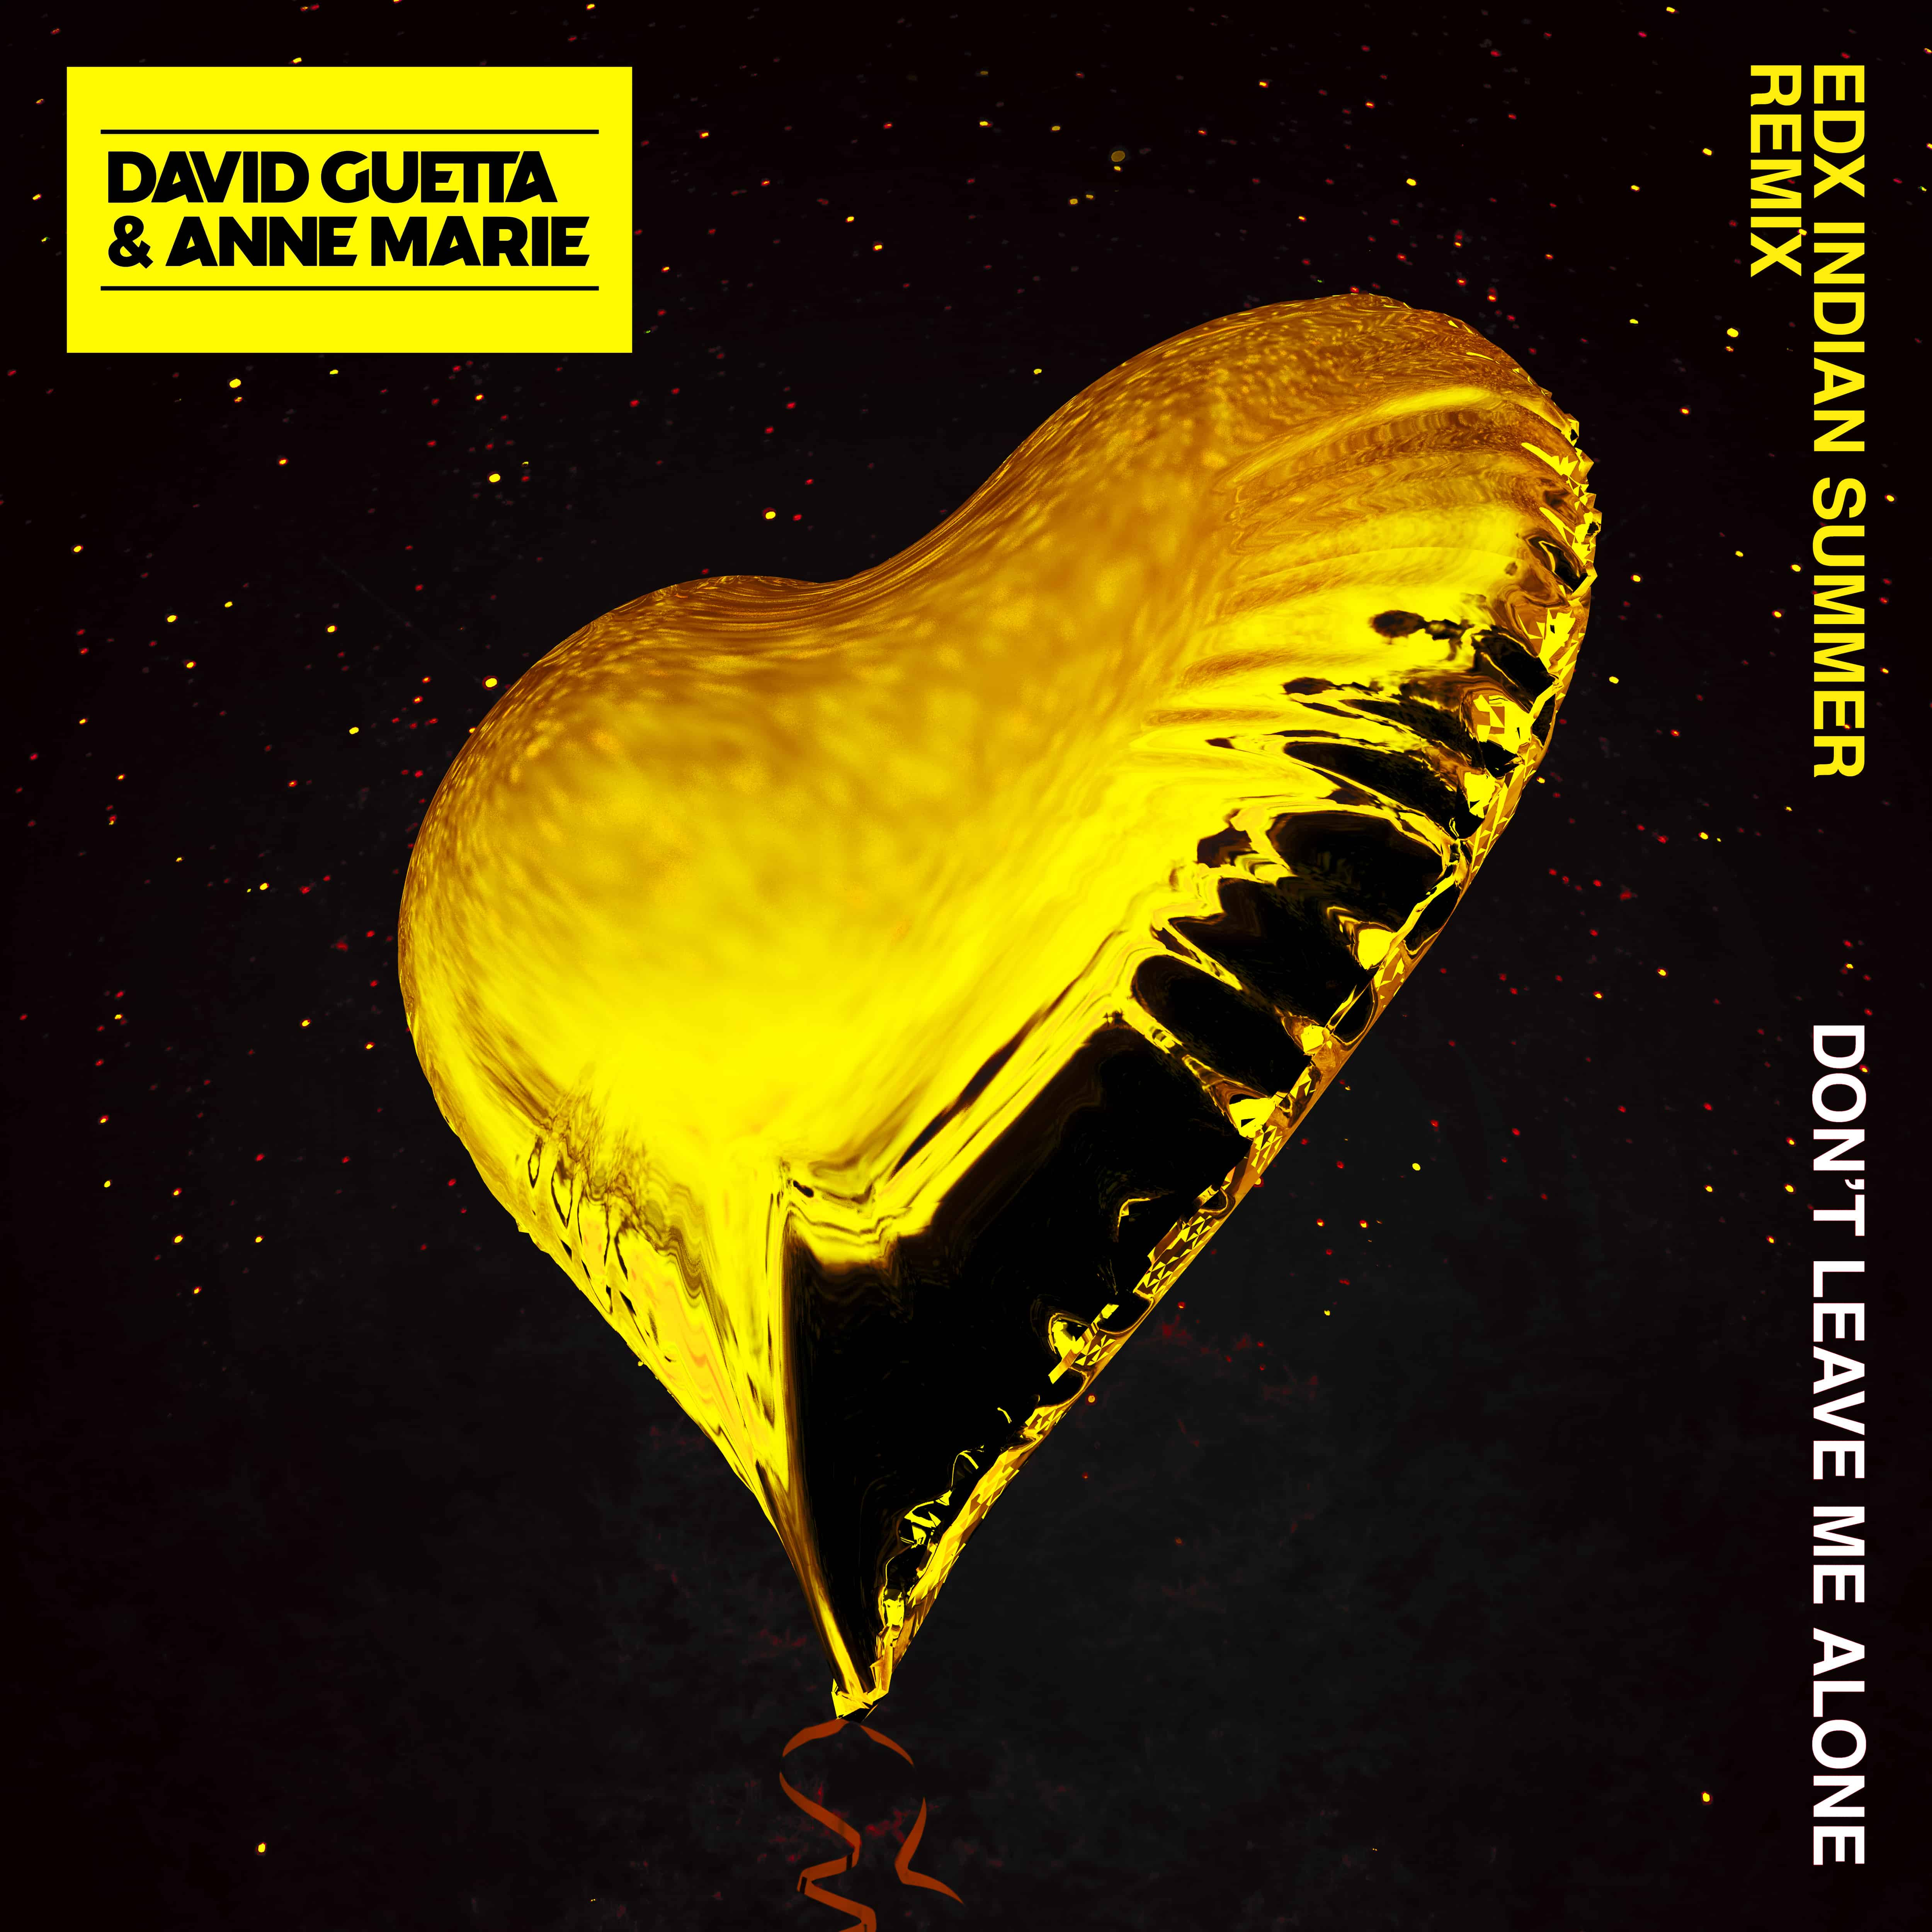 David Guetta drops 'Don't Leave Me Alone (EDX's Indian Summer Remix)'